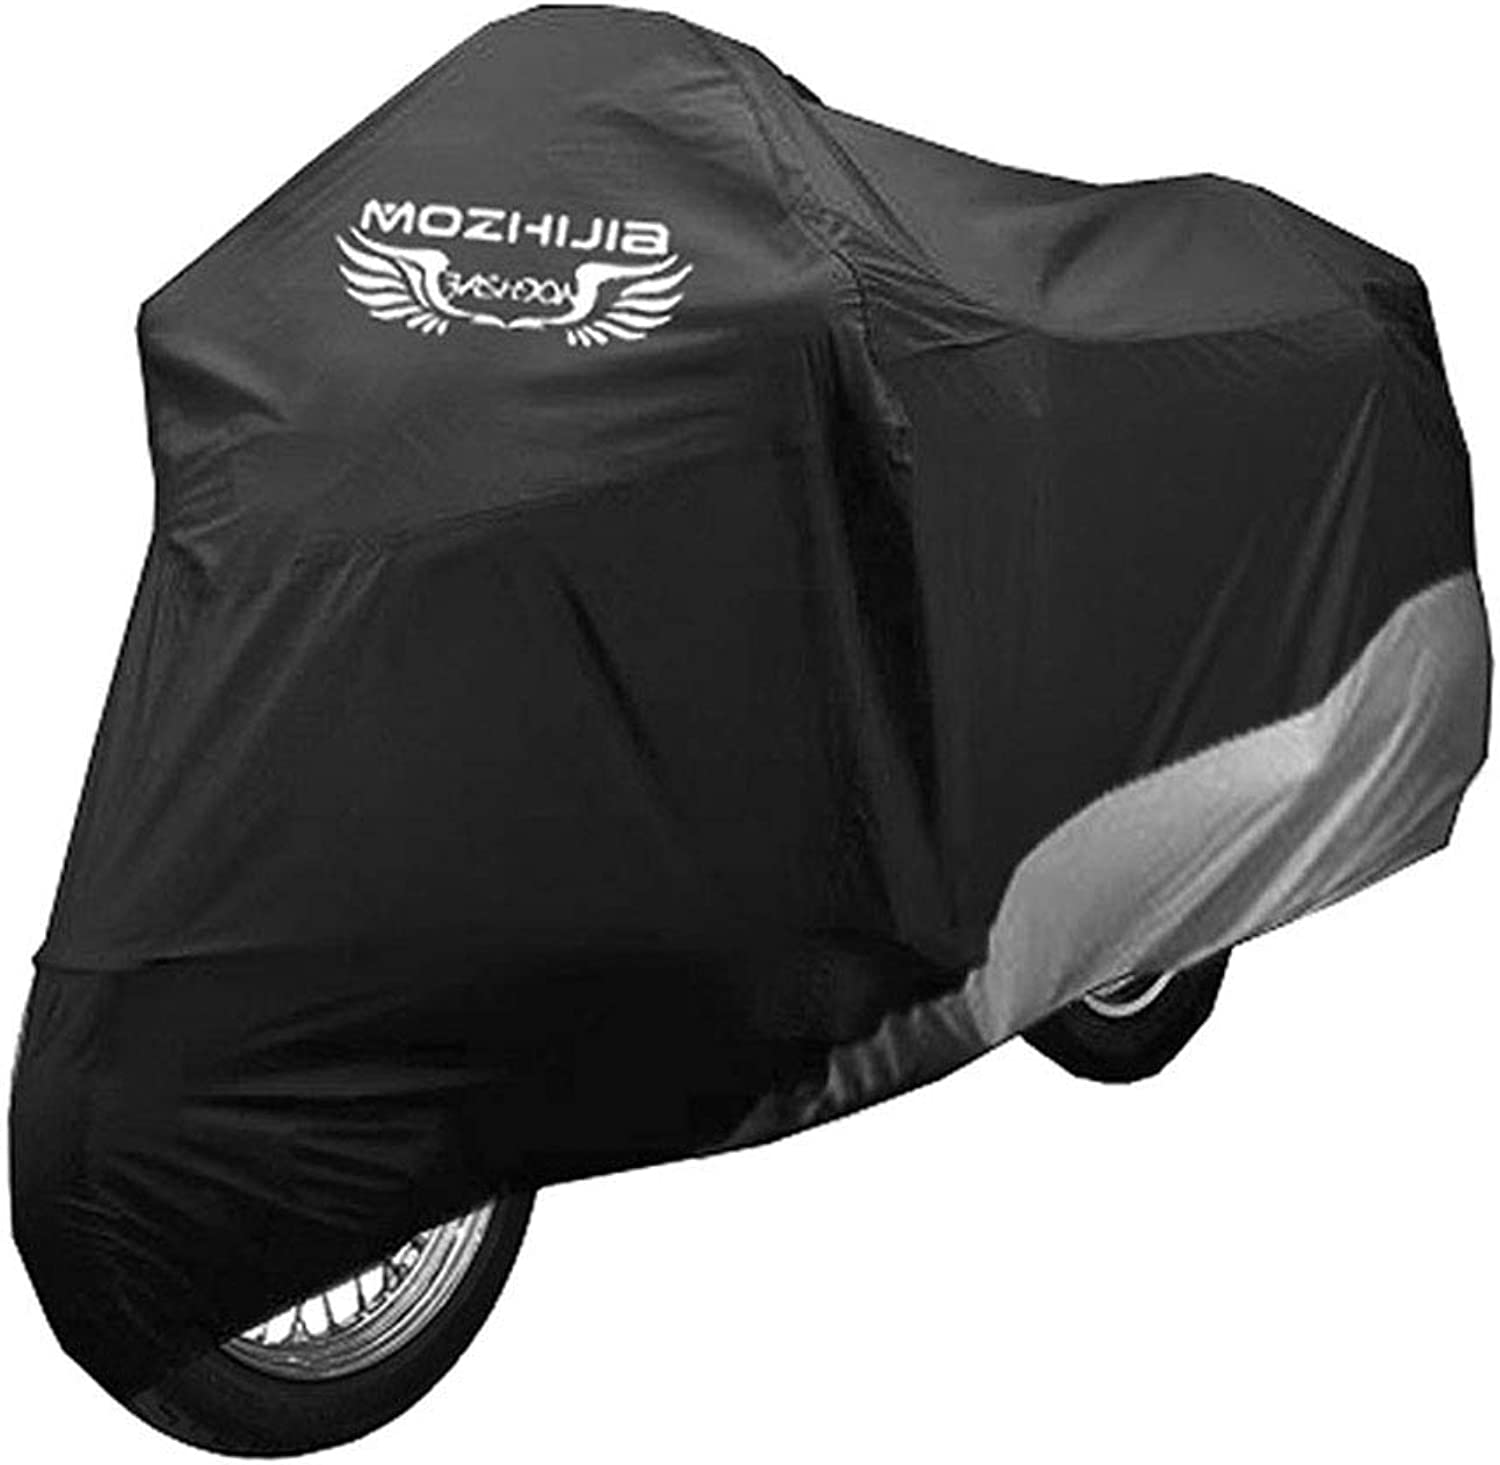 Bicycle Cover, Outdoor Motorcycle Cover, 190T Polyester PU AntiTheft Hole Windproof dustproof Cover Large Size Portable Easy to fold Black L109W43H66in